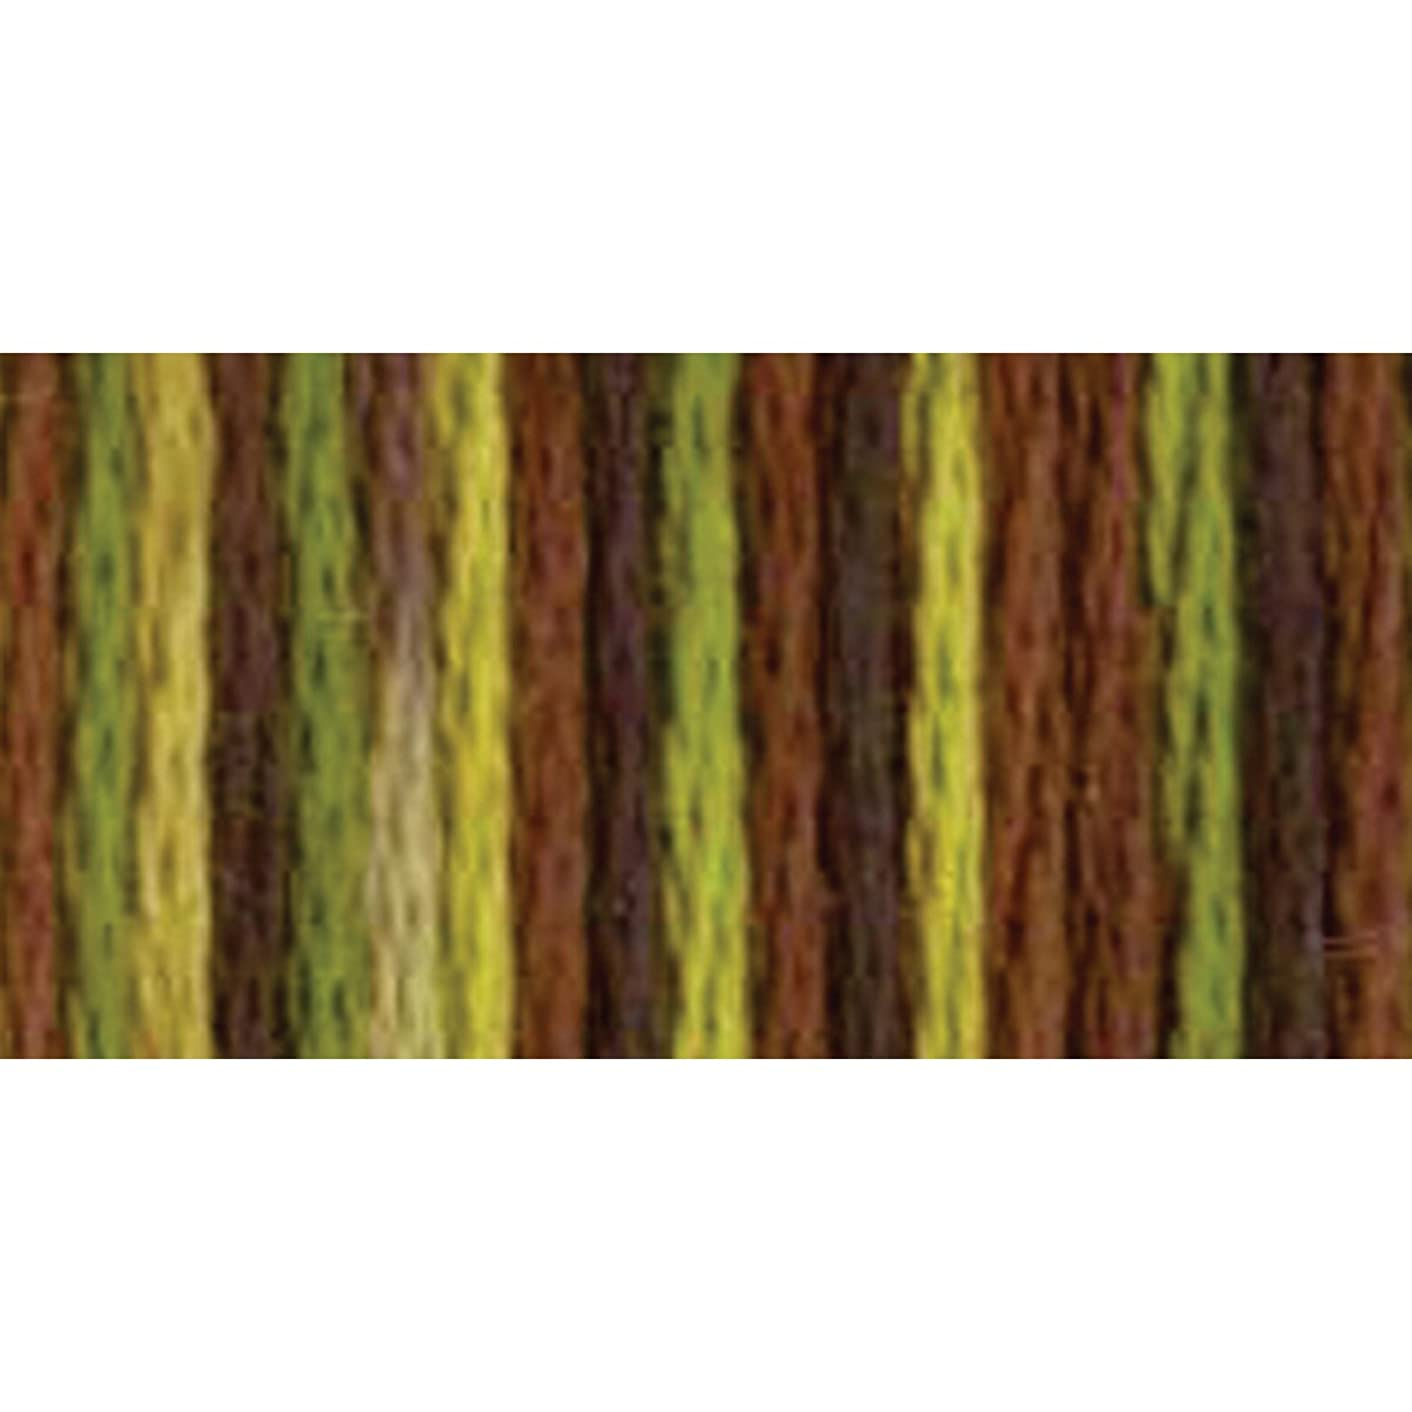 DMC 415 5-4068 Color Variations Pearl Cotton Thread, 27 yd, Size 5, Camouflage